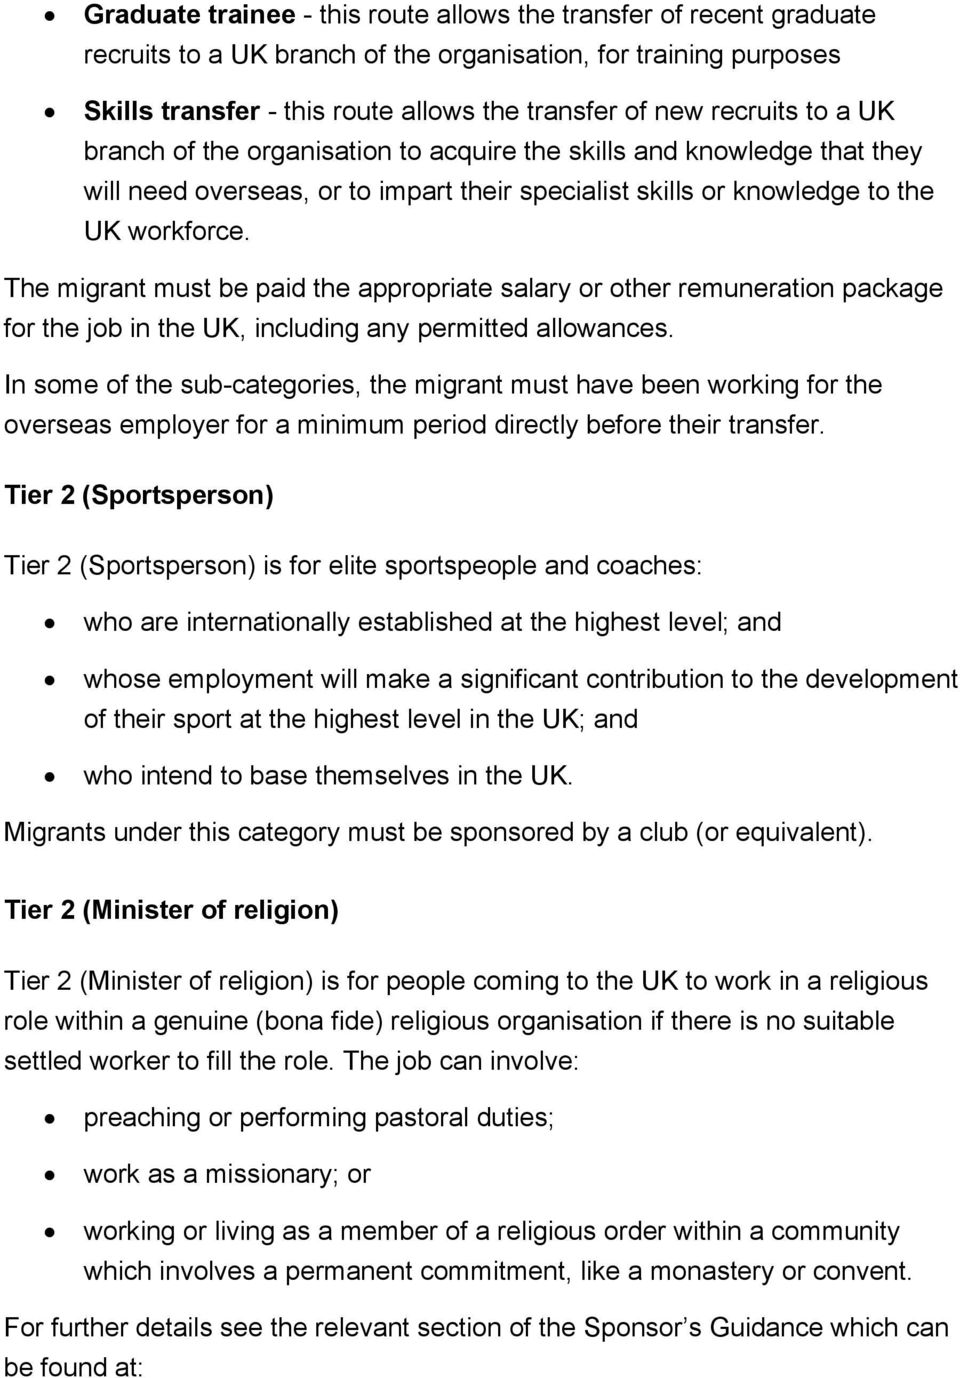 The migrant must be paid the appropriate salary or other remuneration package for the job in the UK, including any permitted allowances.